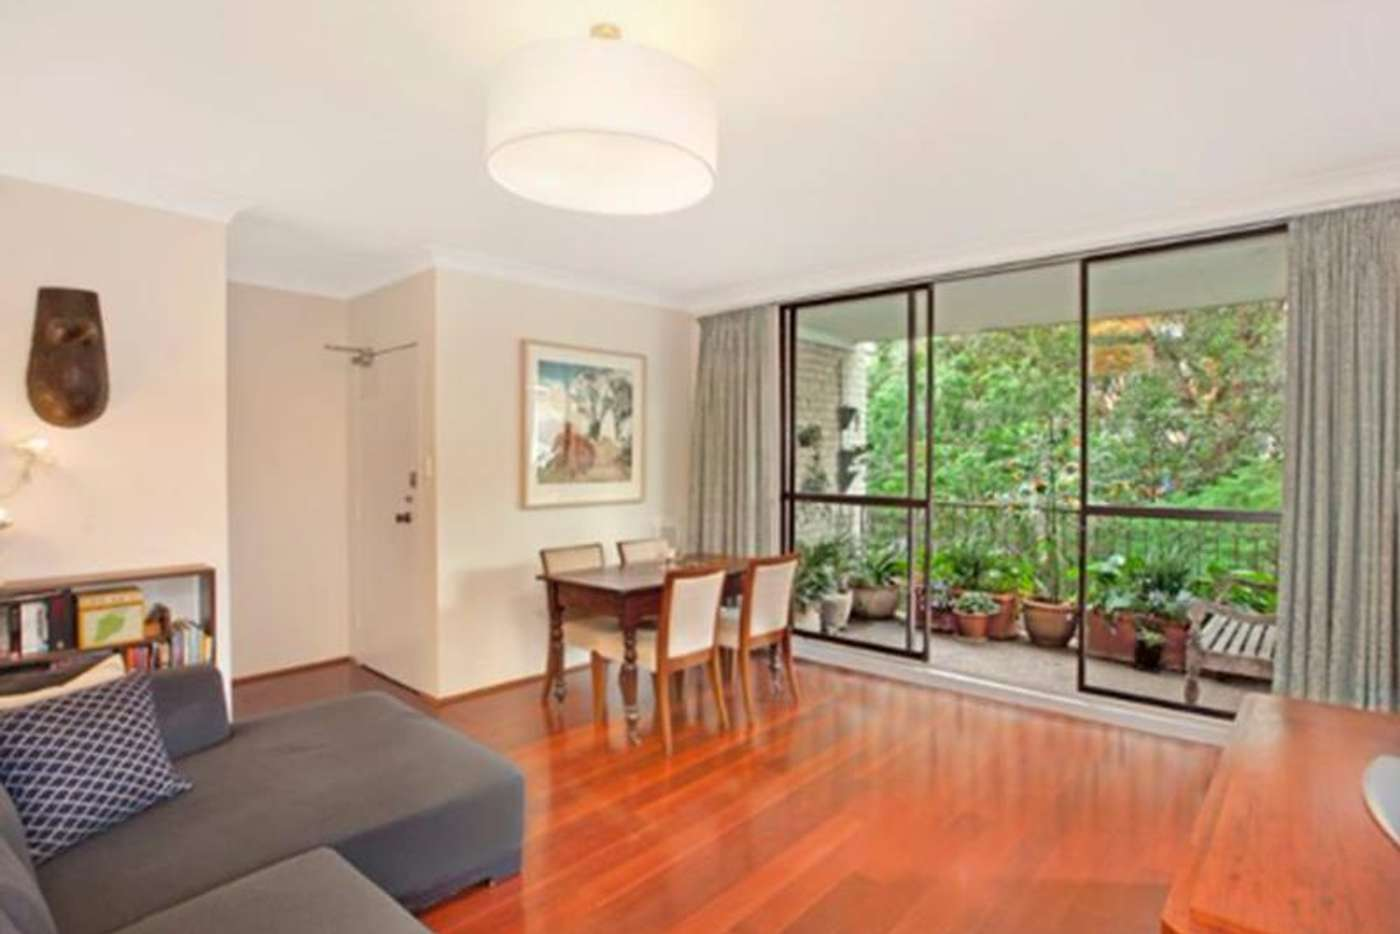 Main view of Homely apartment listing, 13/3 Lorne Avenue, Kensington NSW 2033